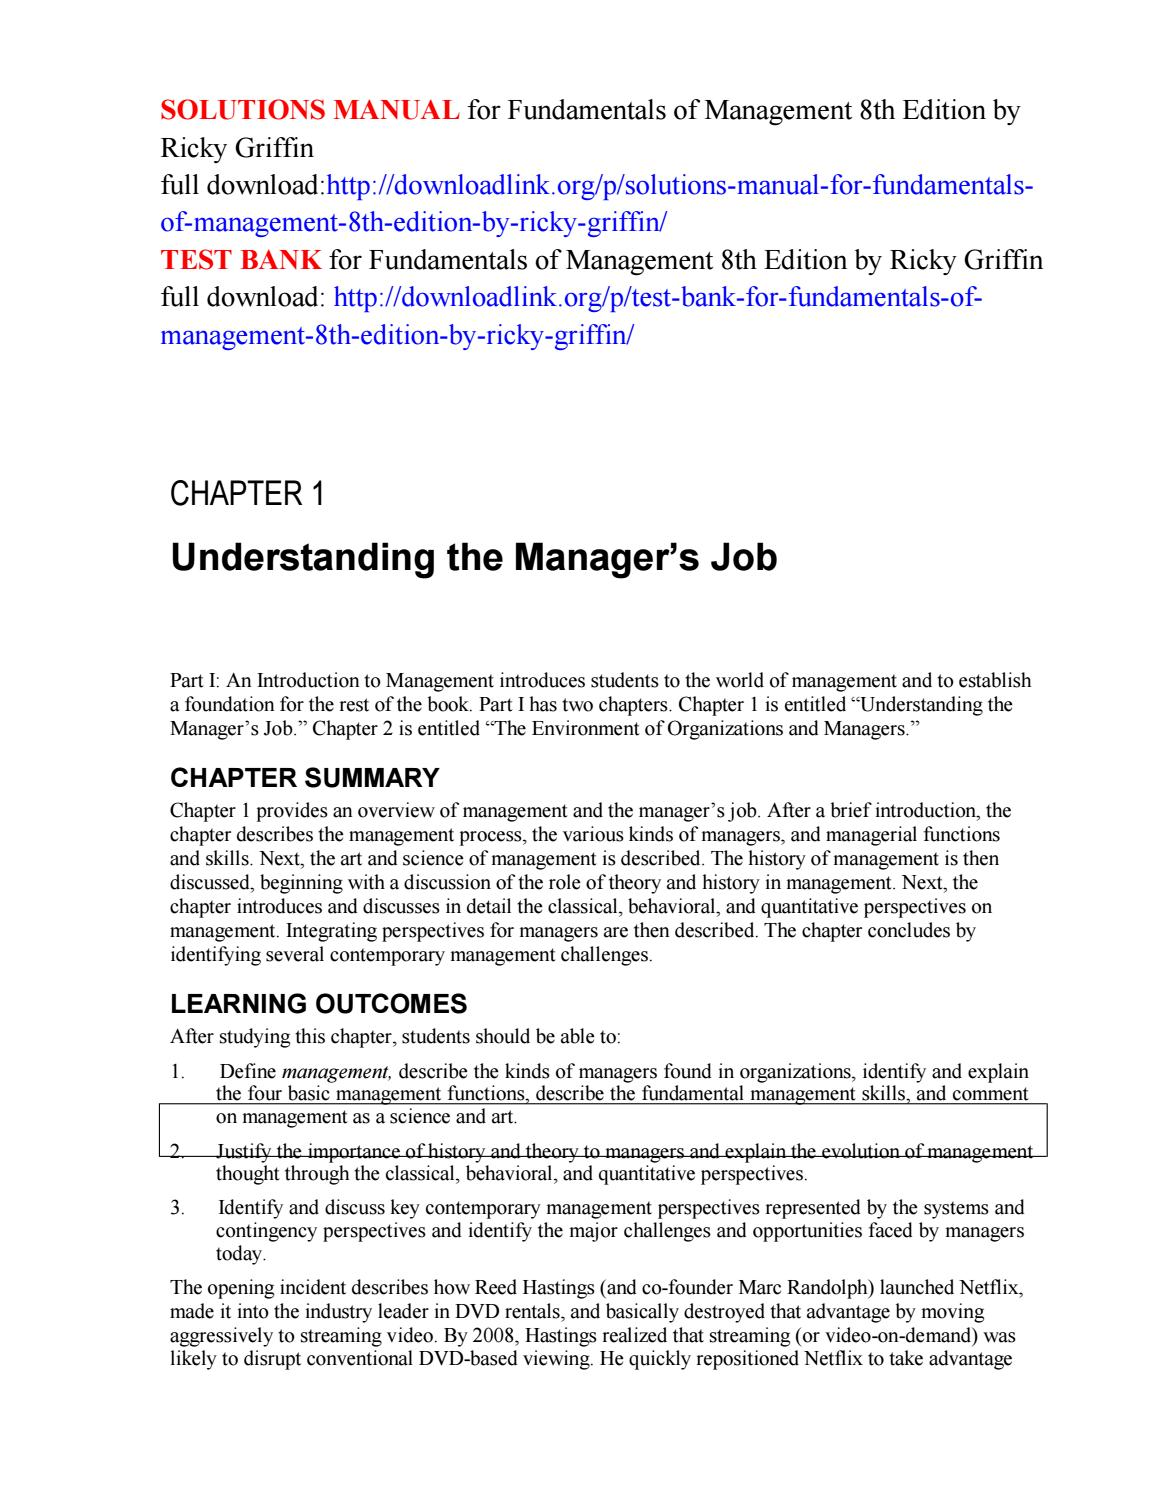 Solutions manual for fundamentals of management 8th edition by ricky  griffin by Cruz222 - issuu